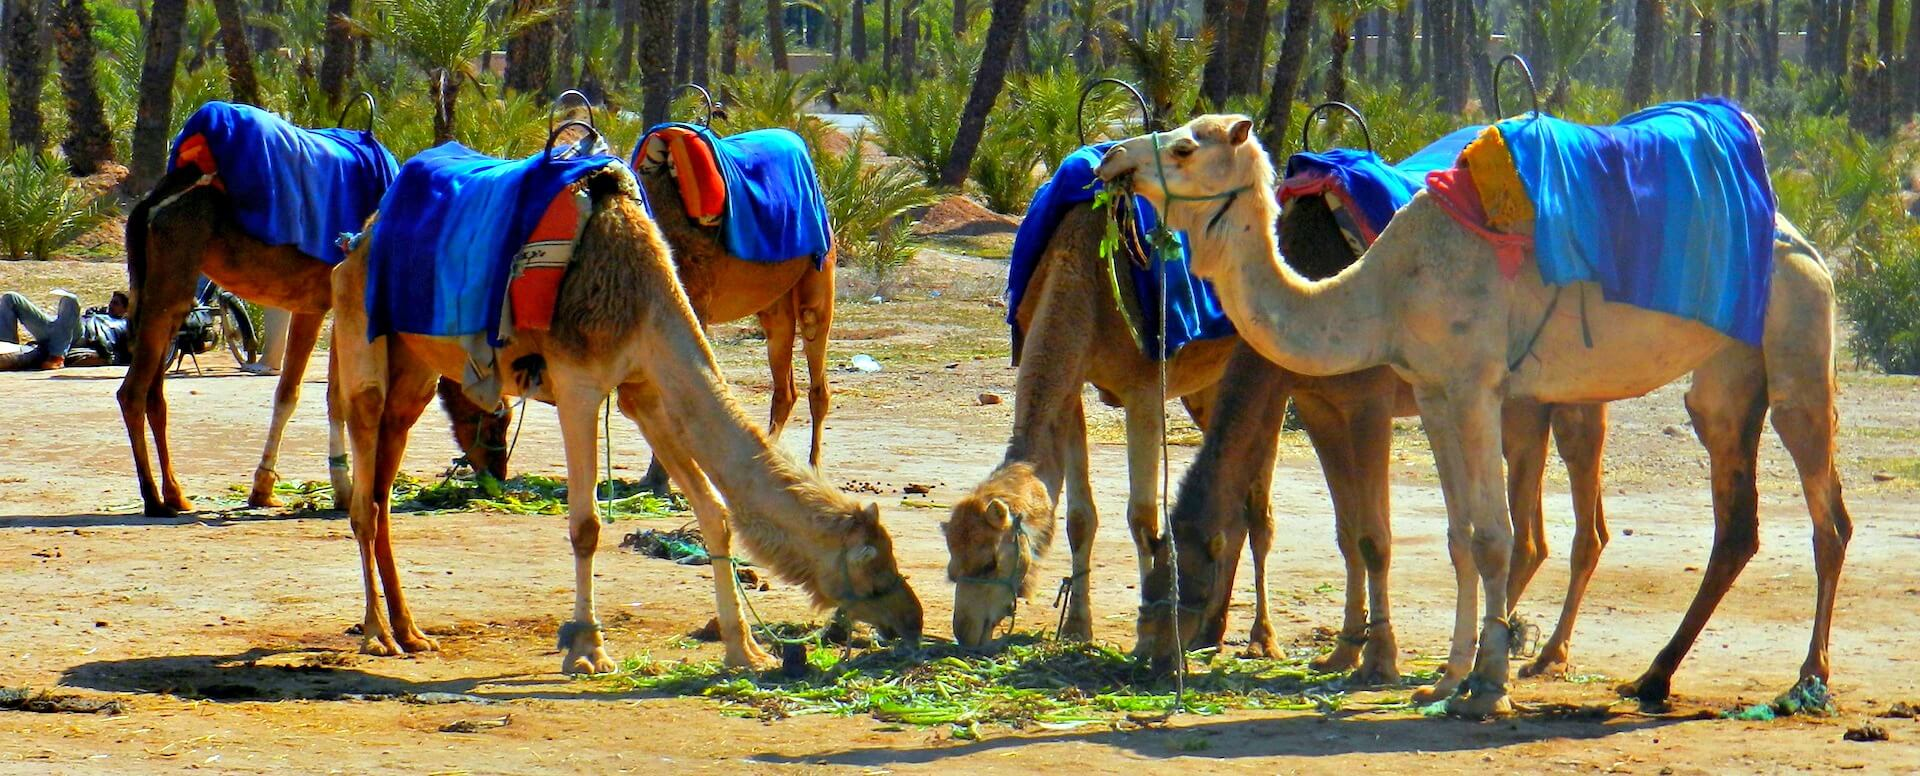 Get close to camels - Marrakech